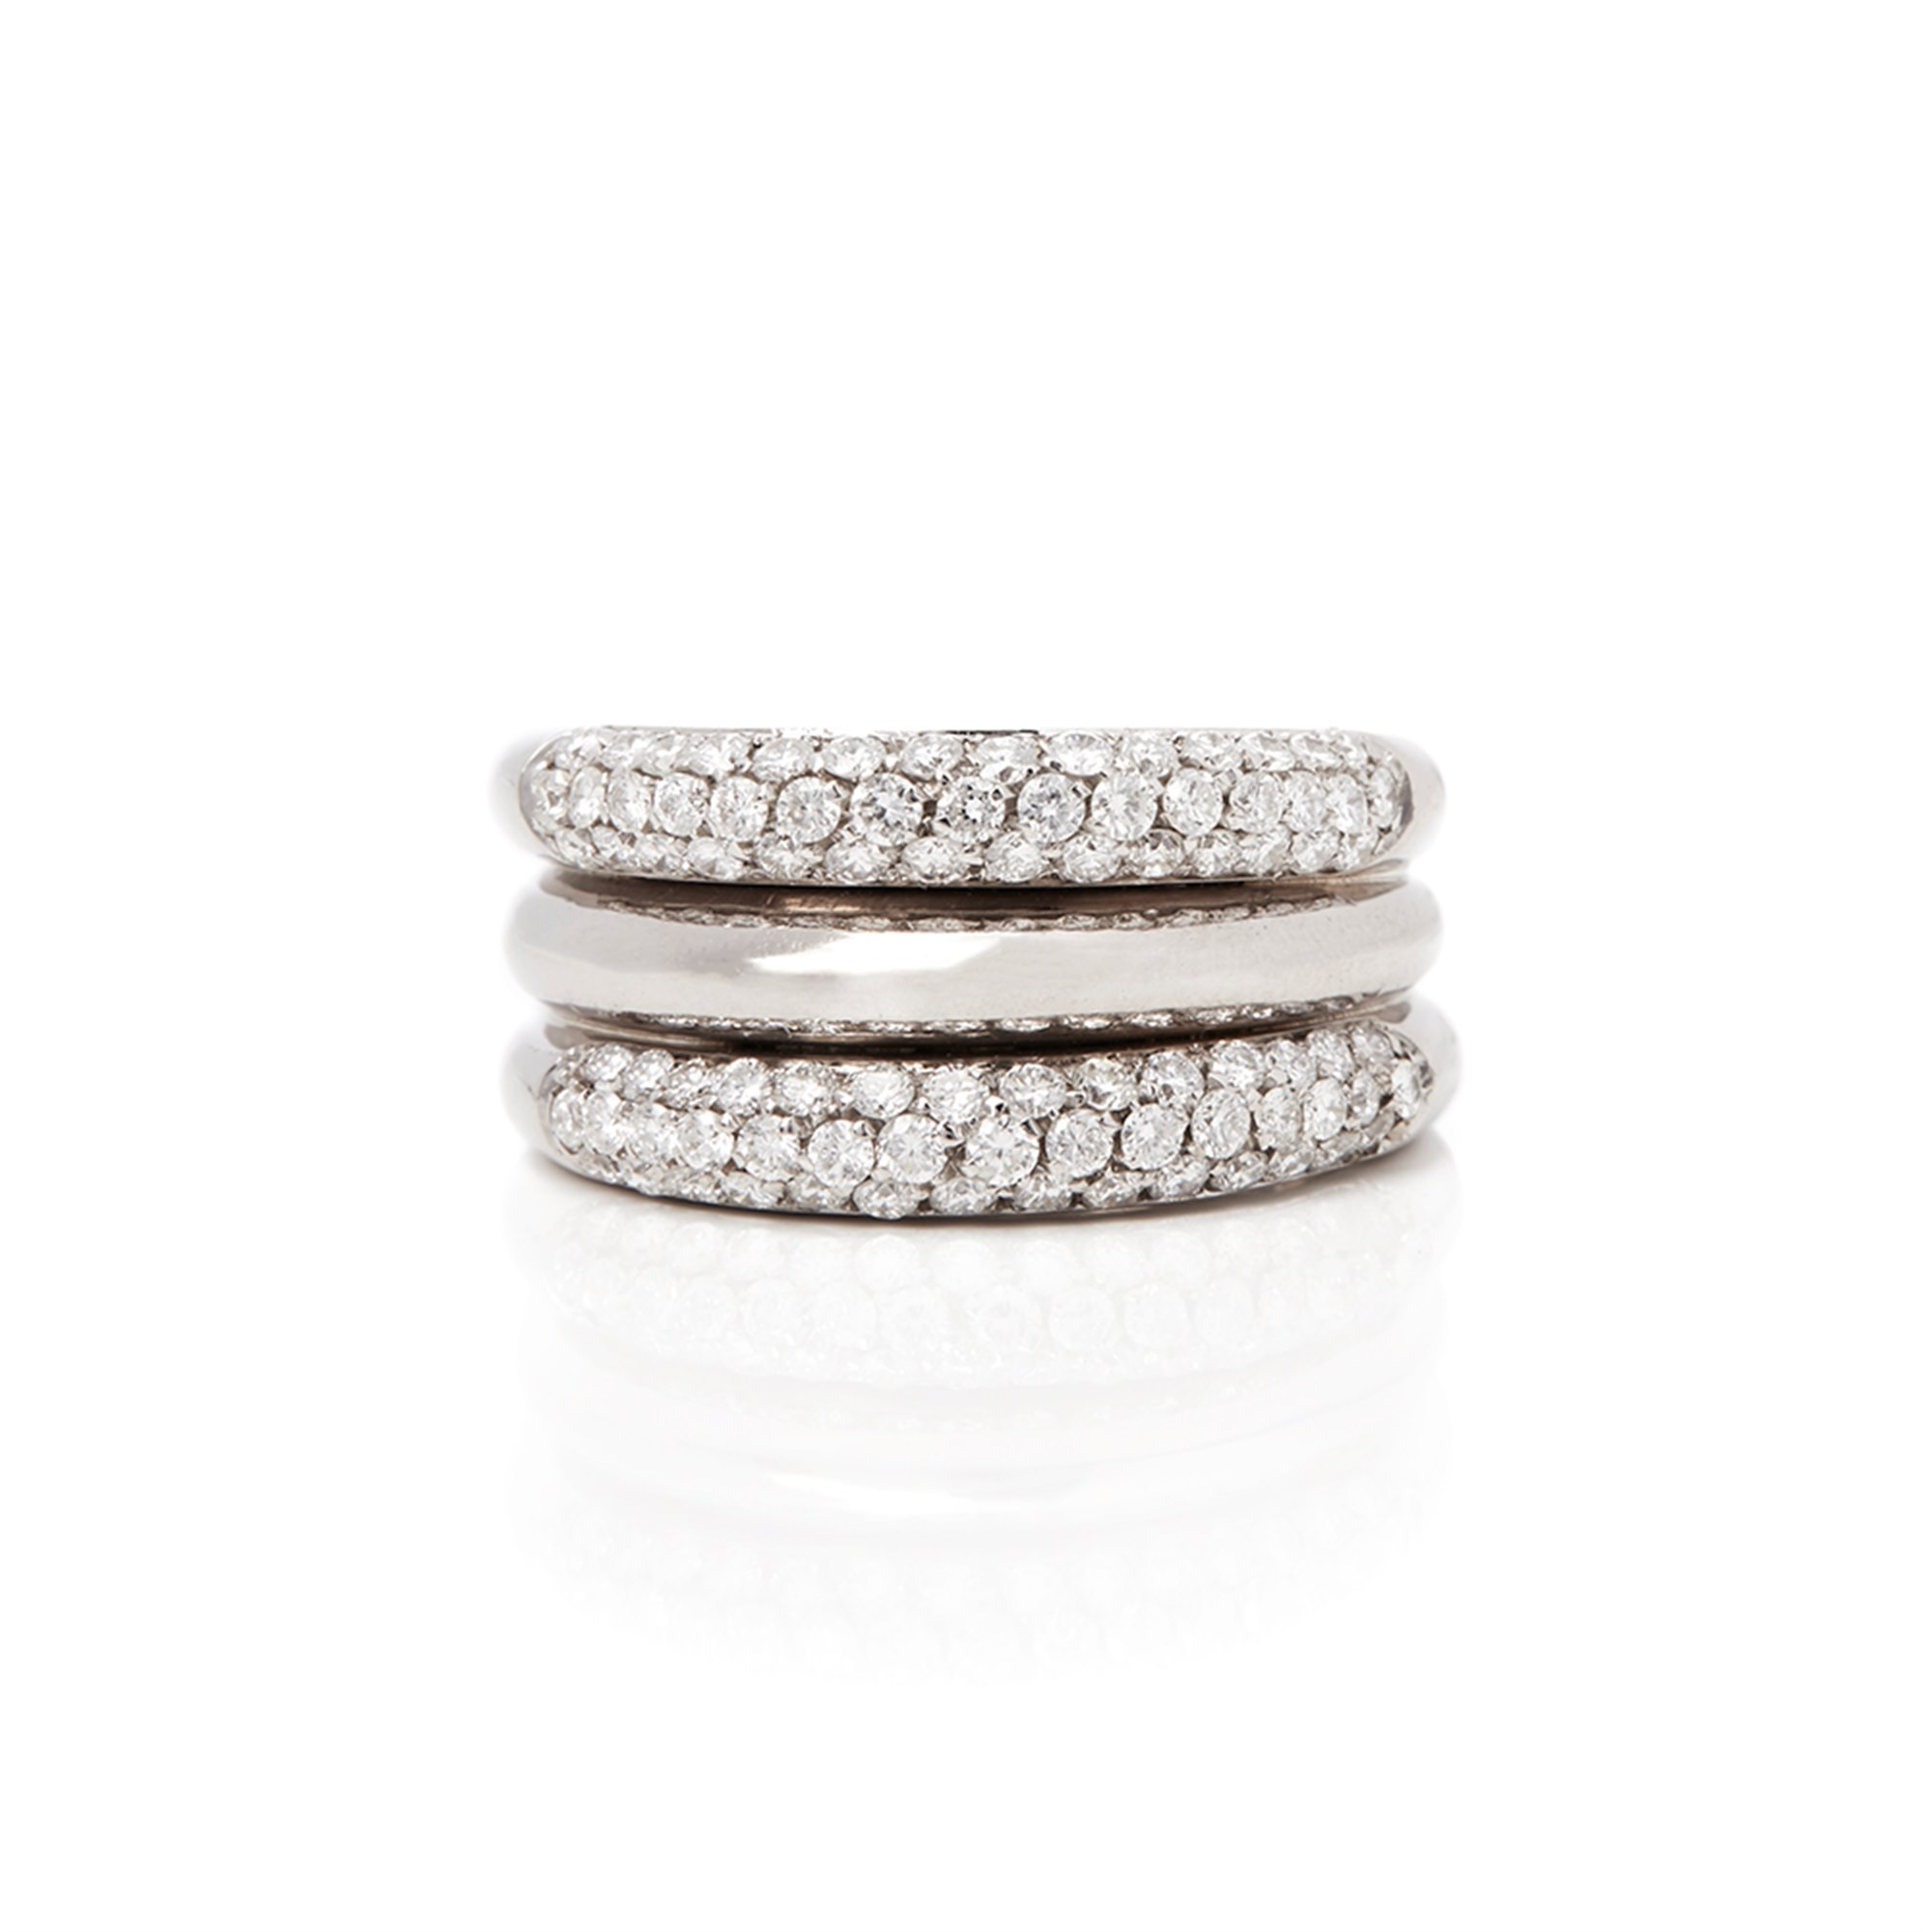 David Morris 18k White Gold Diamond Signature Band